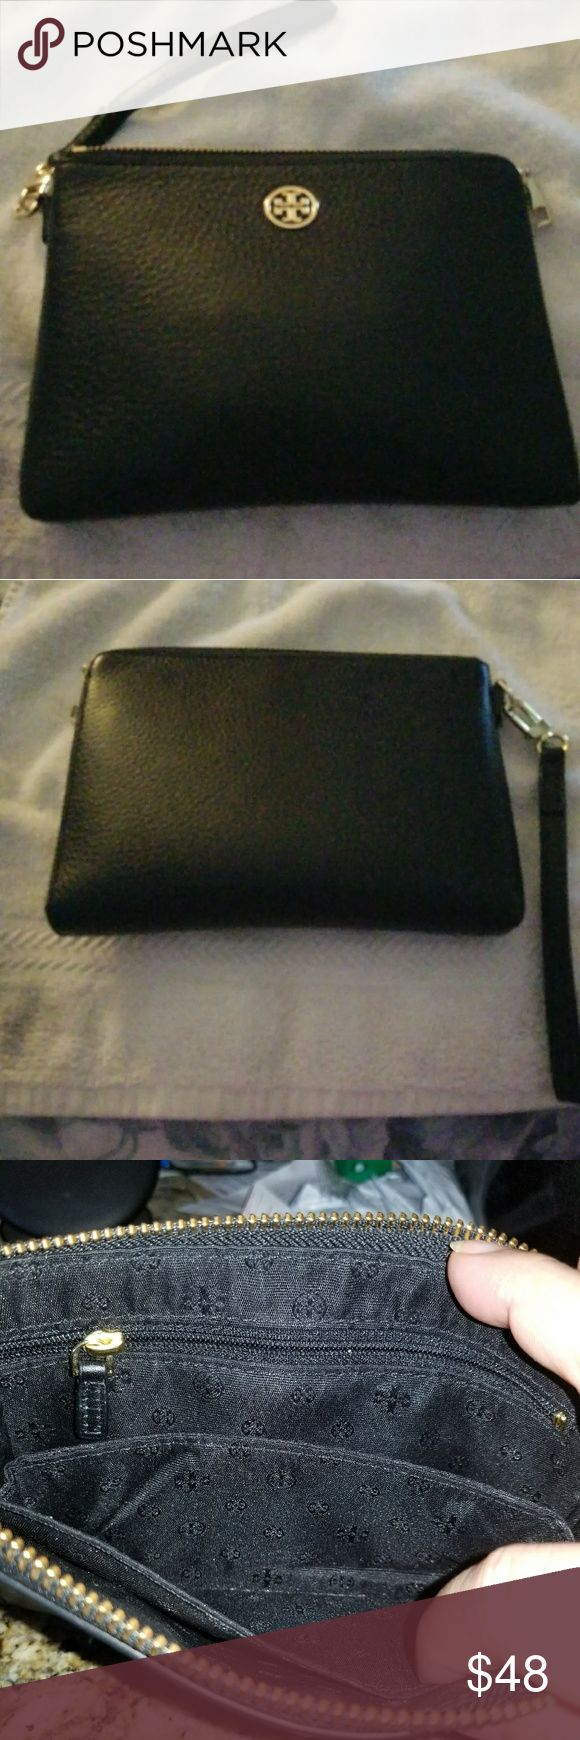 """Tory Burch WRISTLET Soft pebbled leather,  Gold hardware, Gold TB logo Zip closure, detachable 8"""" leather strap with gold snap hook. Tory Burch signature lining, 1 interior zip pocket , 2 slip pockets It can also fit a Samsung S8 phone! #Please note one corner is slighlty rubbed off.   Measures: 8""""L x 5.5""""H x 1"""" D Retail price: $165 Tag included. Make an offer!! Tory Burch Bags Wallets"""